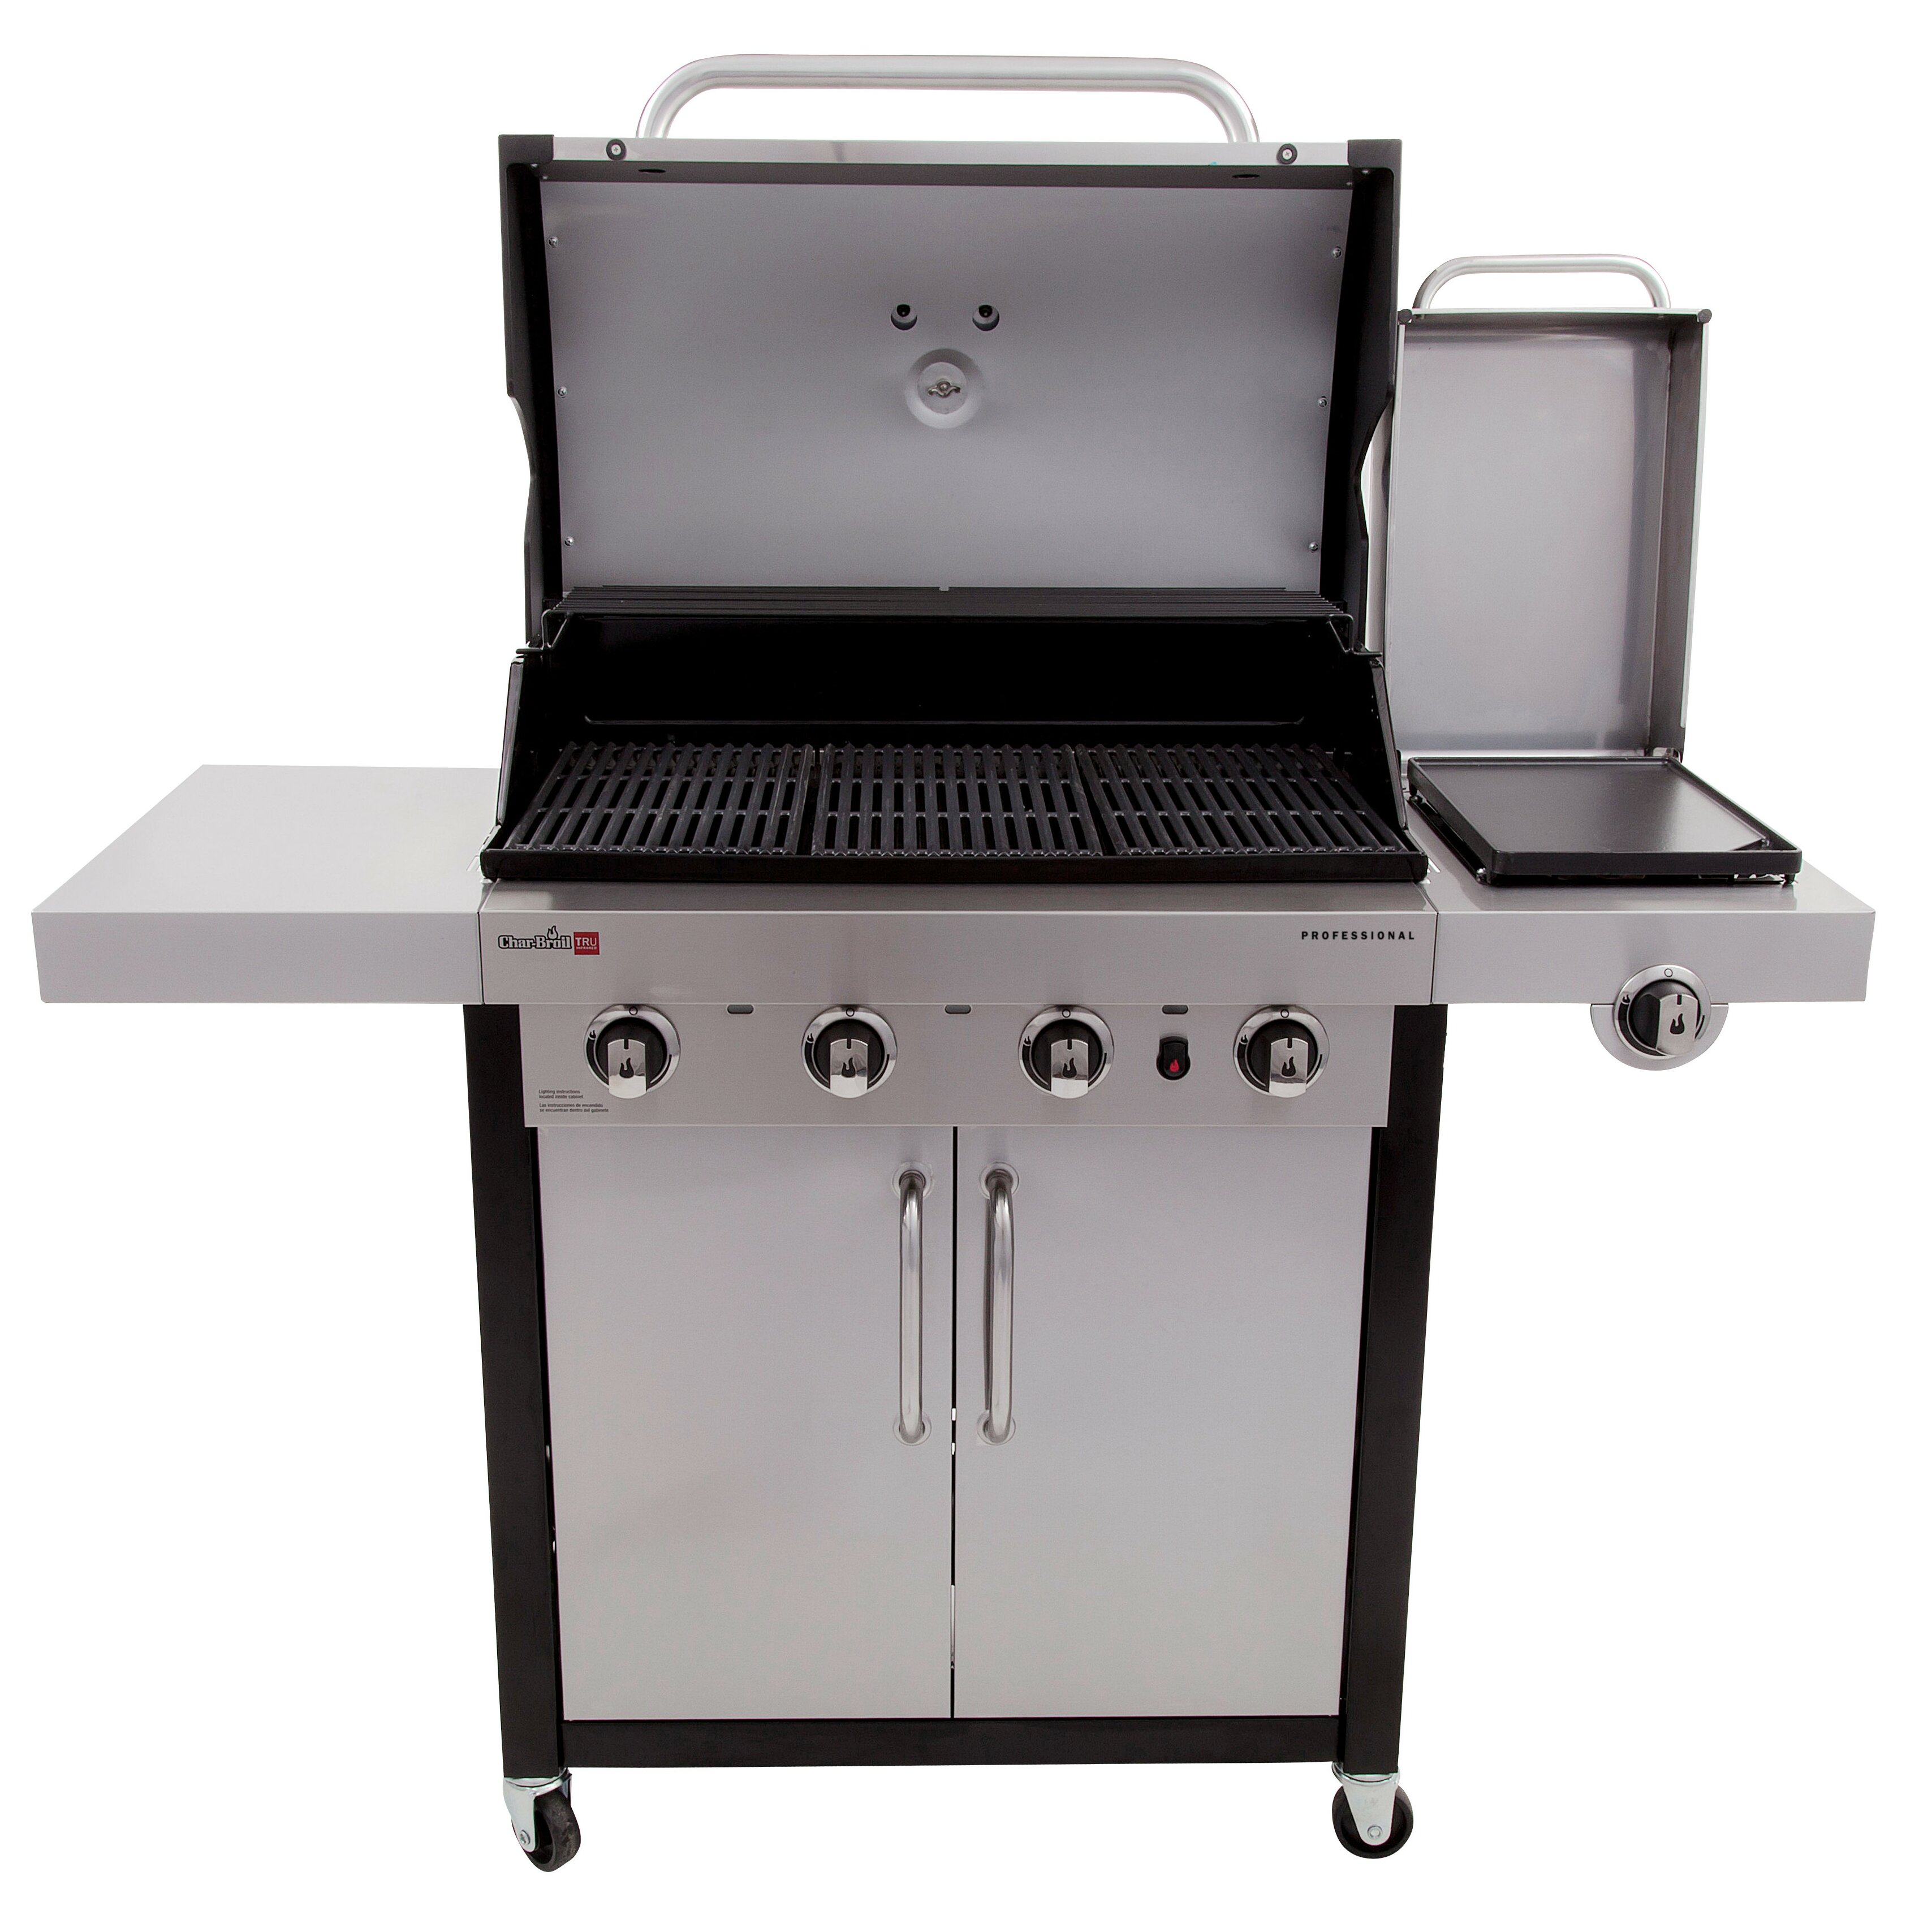 Sides On The Grill: CharBroil Professional Gas Grill With Side Burner